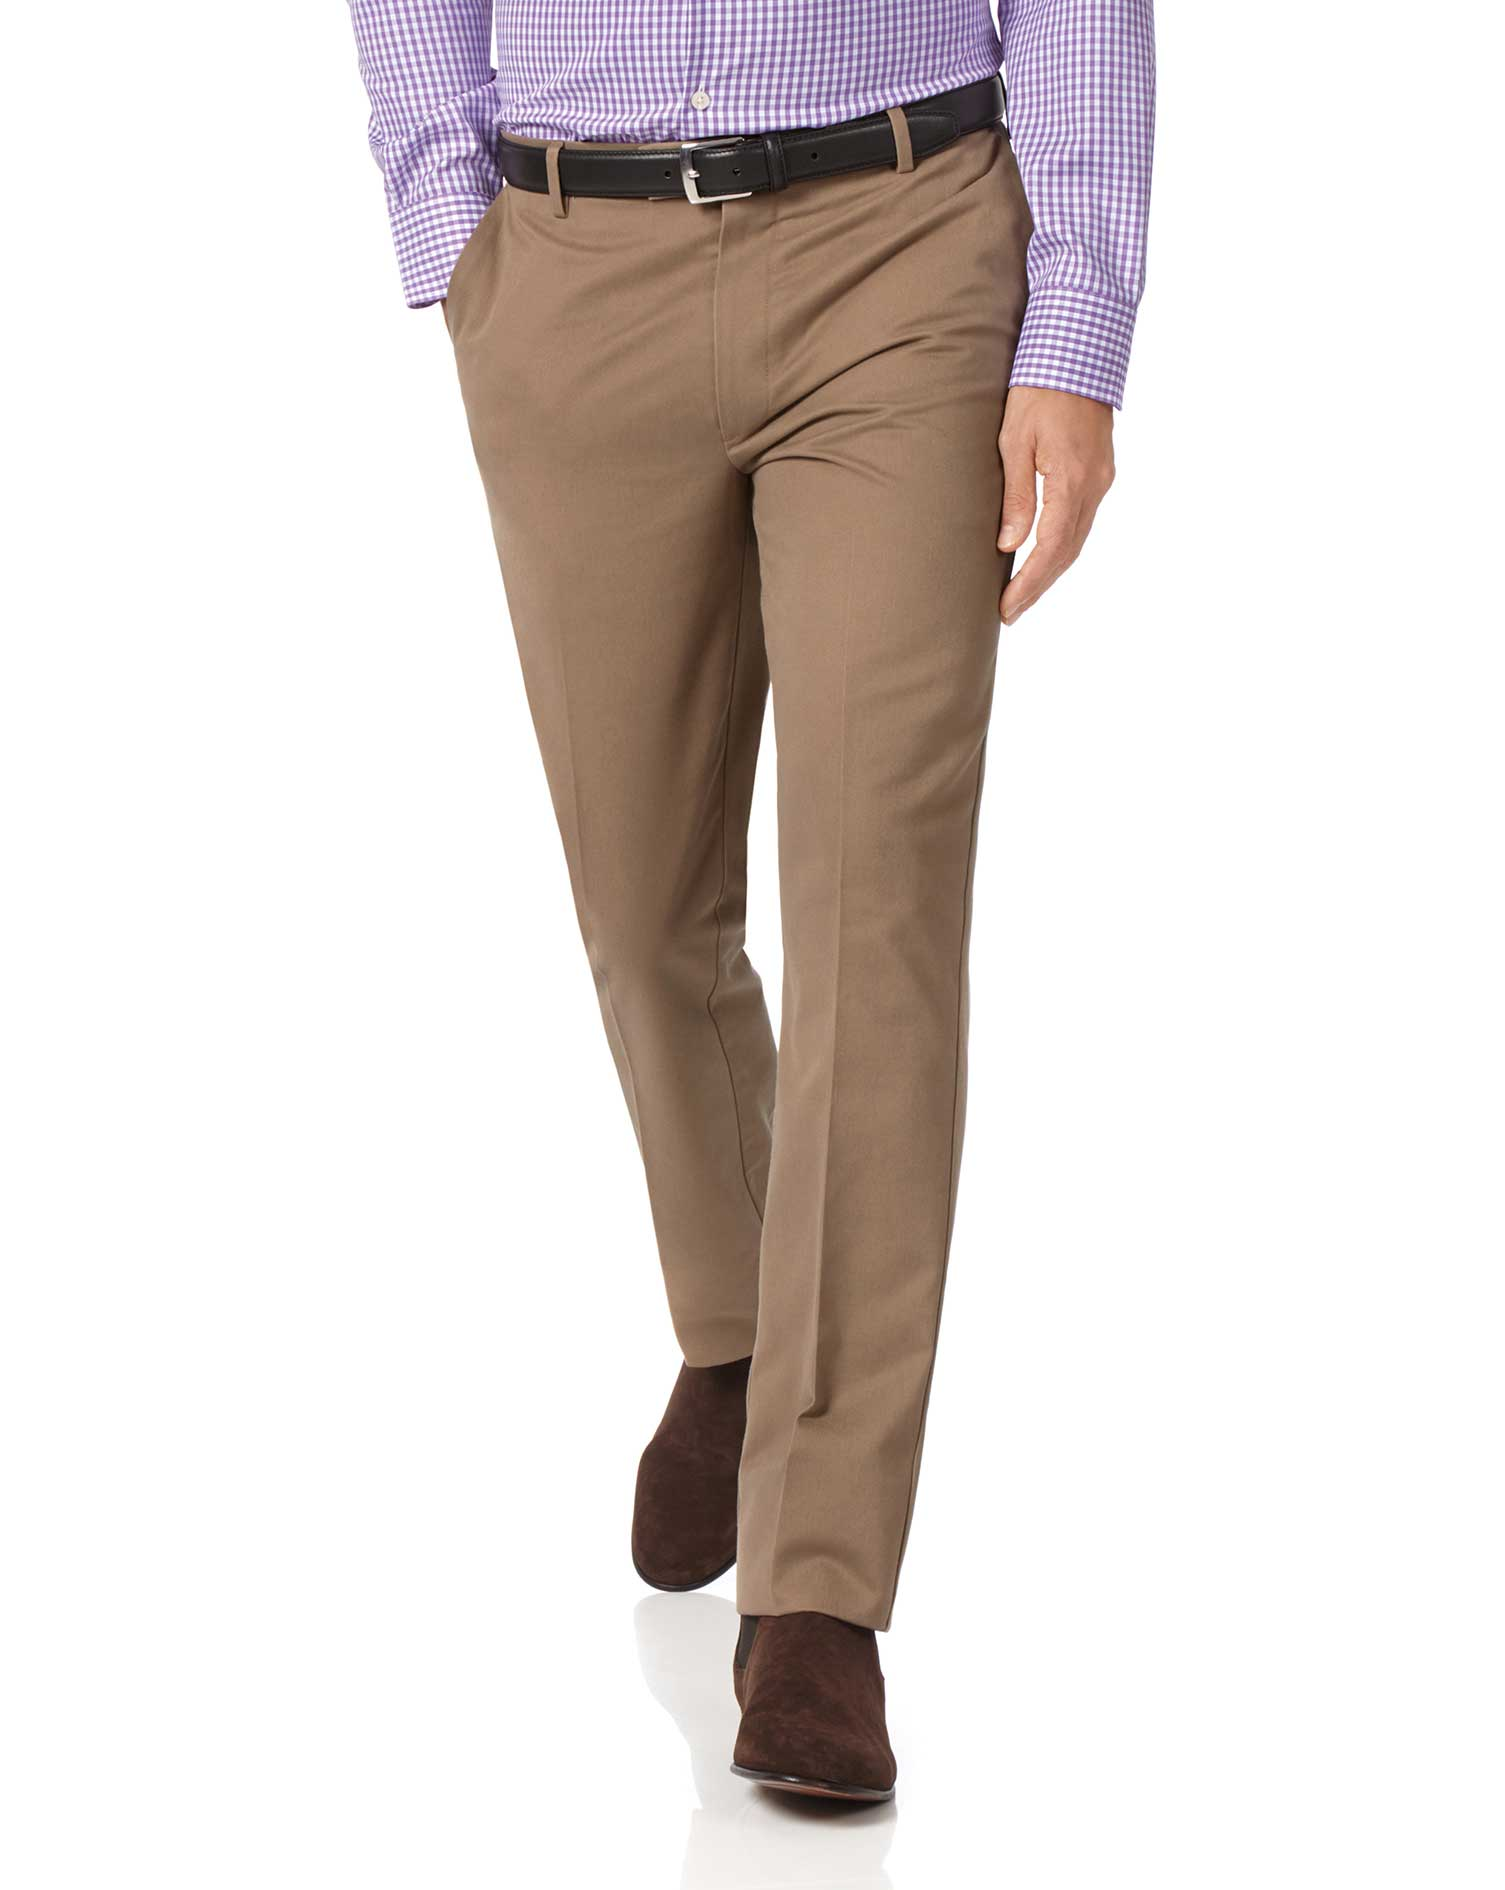 Tan Extra Slim Fit Flat Front Non-Iron Cotton Chino Trousers Size W34 L29 by Charles Tyrwhitt